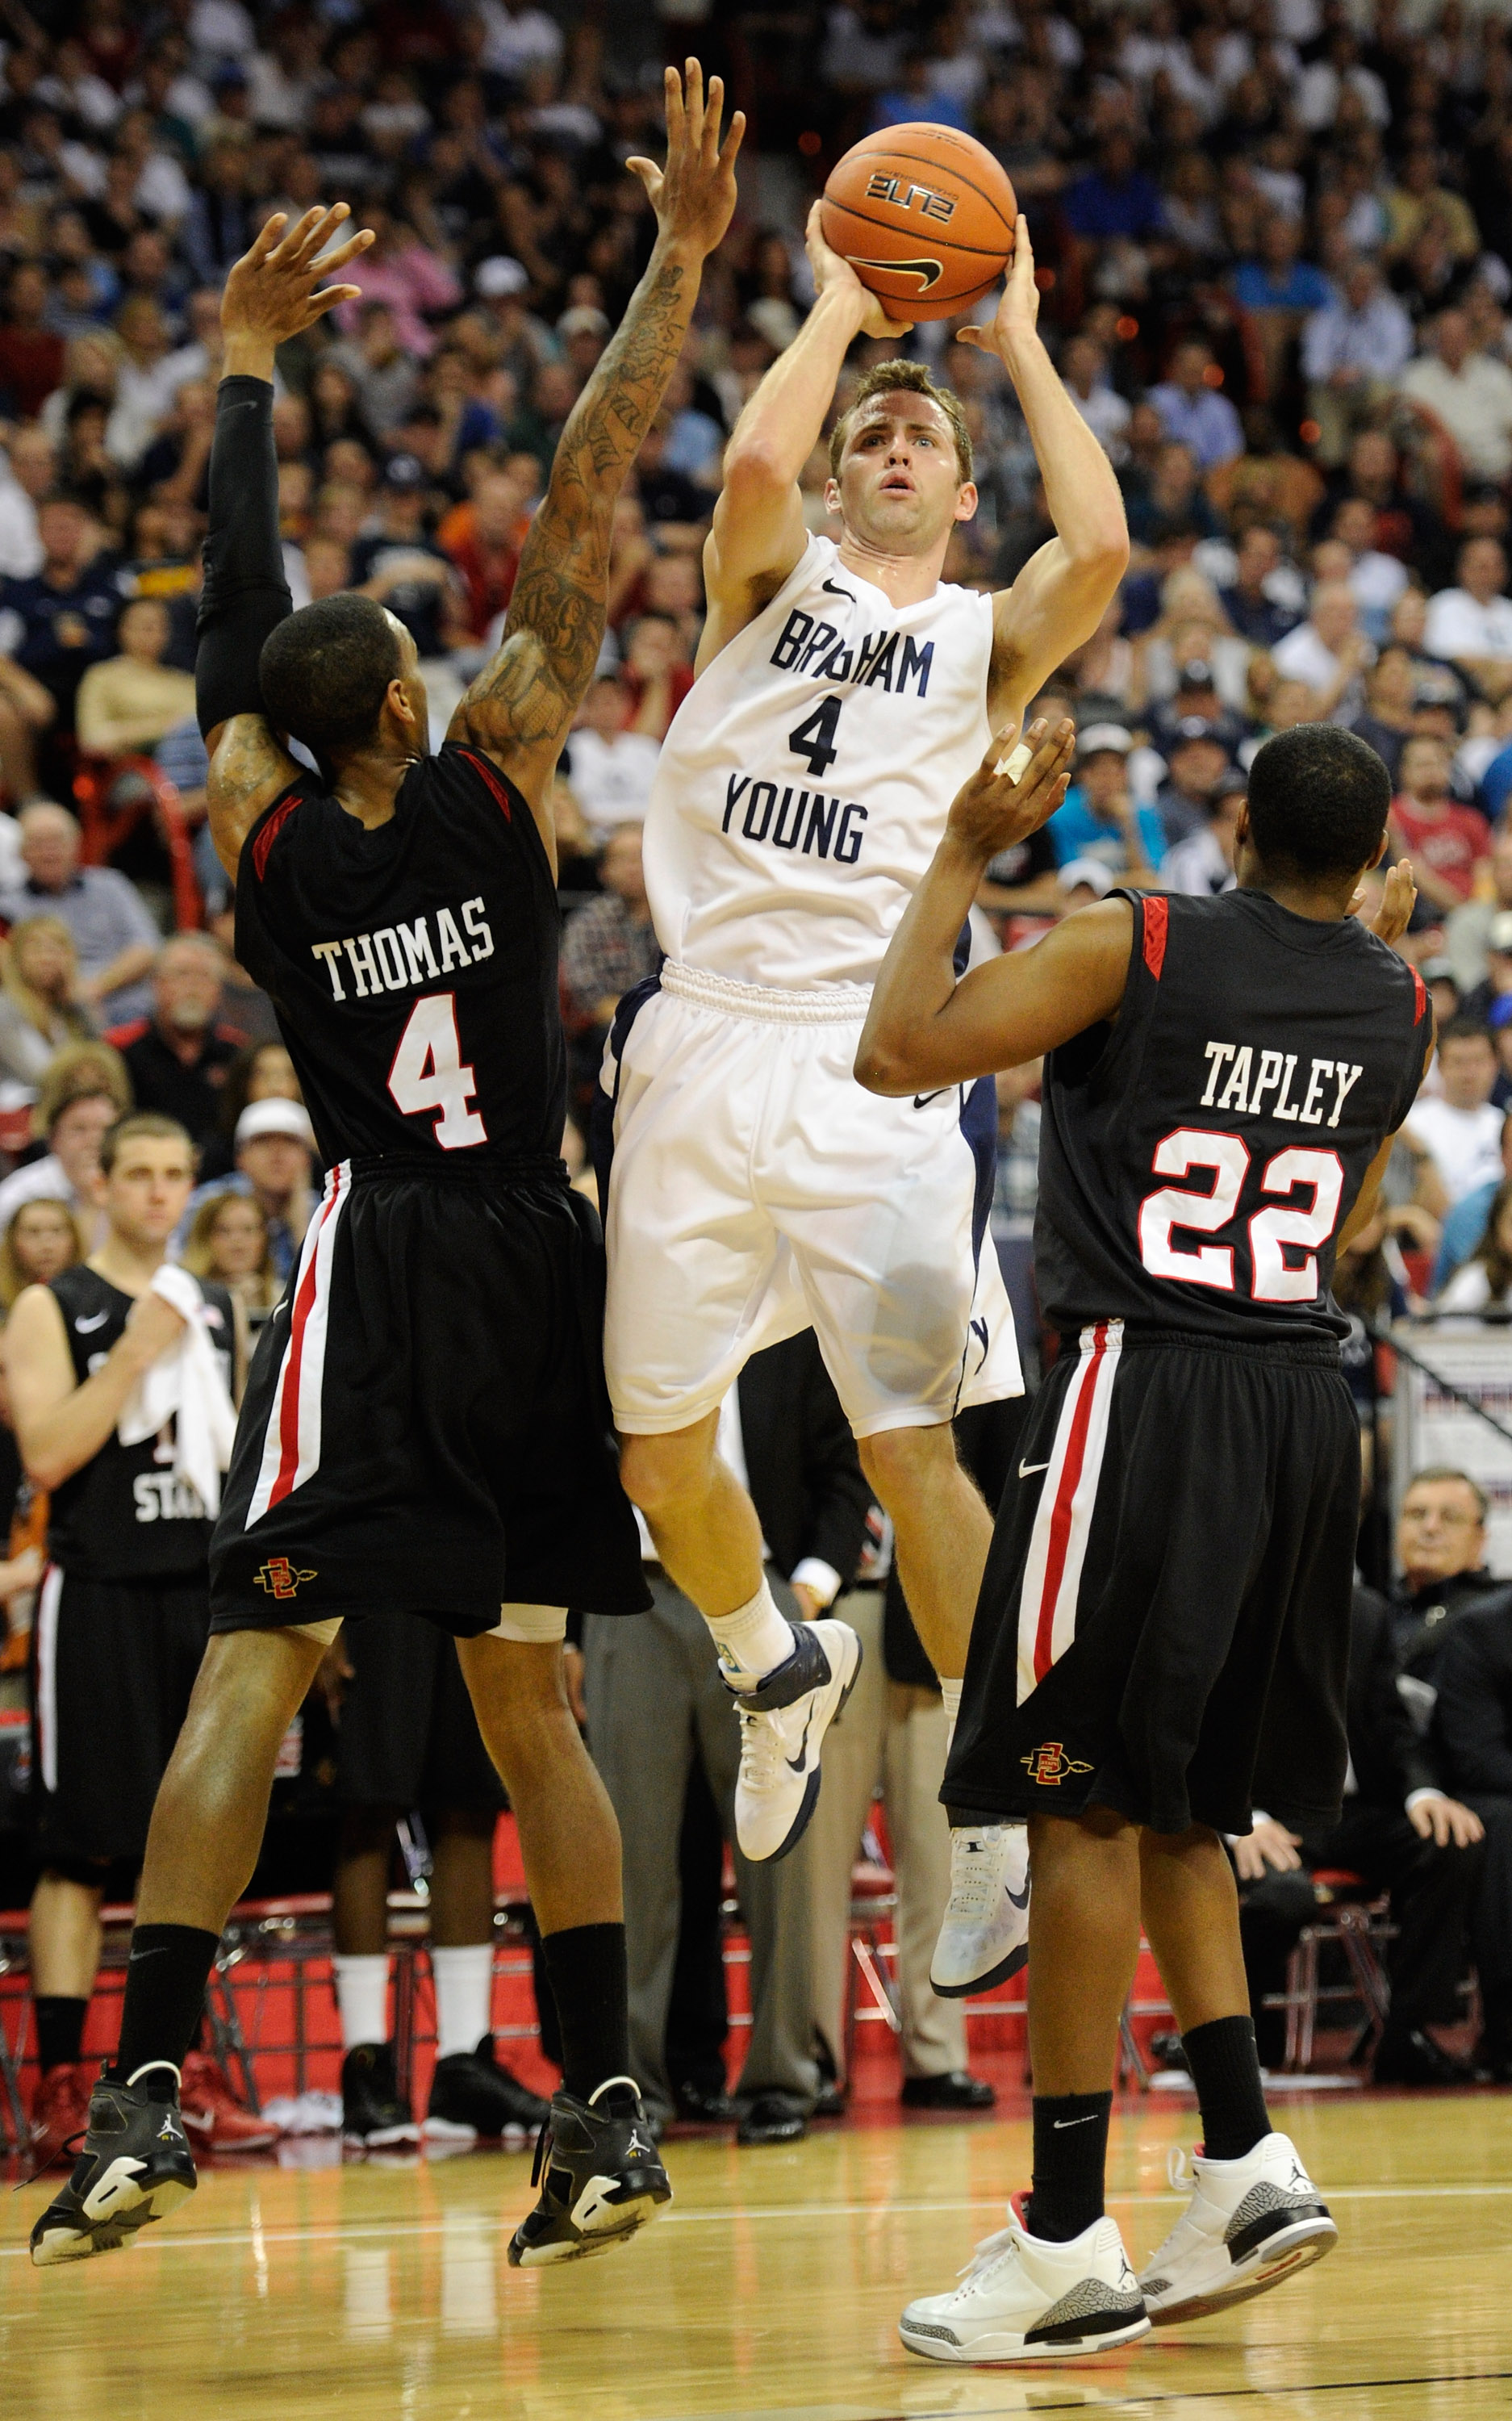 LAS VEGAS, NV - MARCH 12:  Jackson Emery #4 of the Brigham Young University Cougars shoots between Malcolm Thomas #4 and Chase Tapley #22 of the San Diego State Aztecs during the championship game of the Conoco Mountain West Conference Basketball tourname